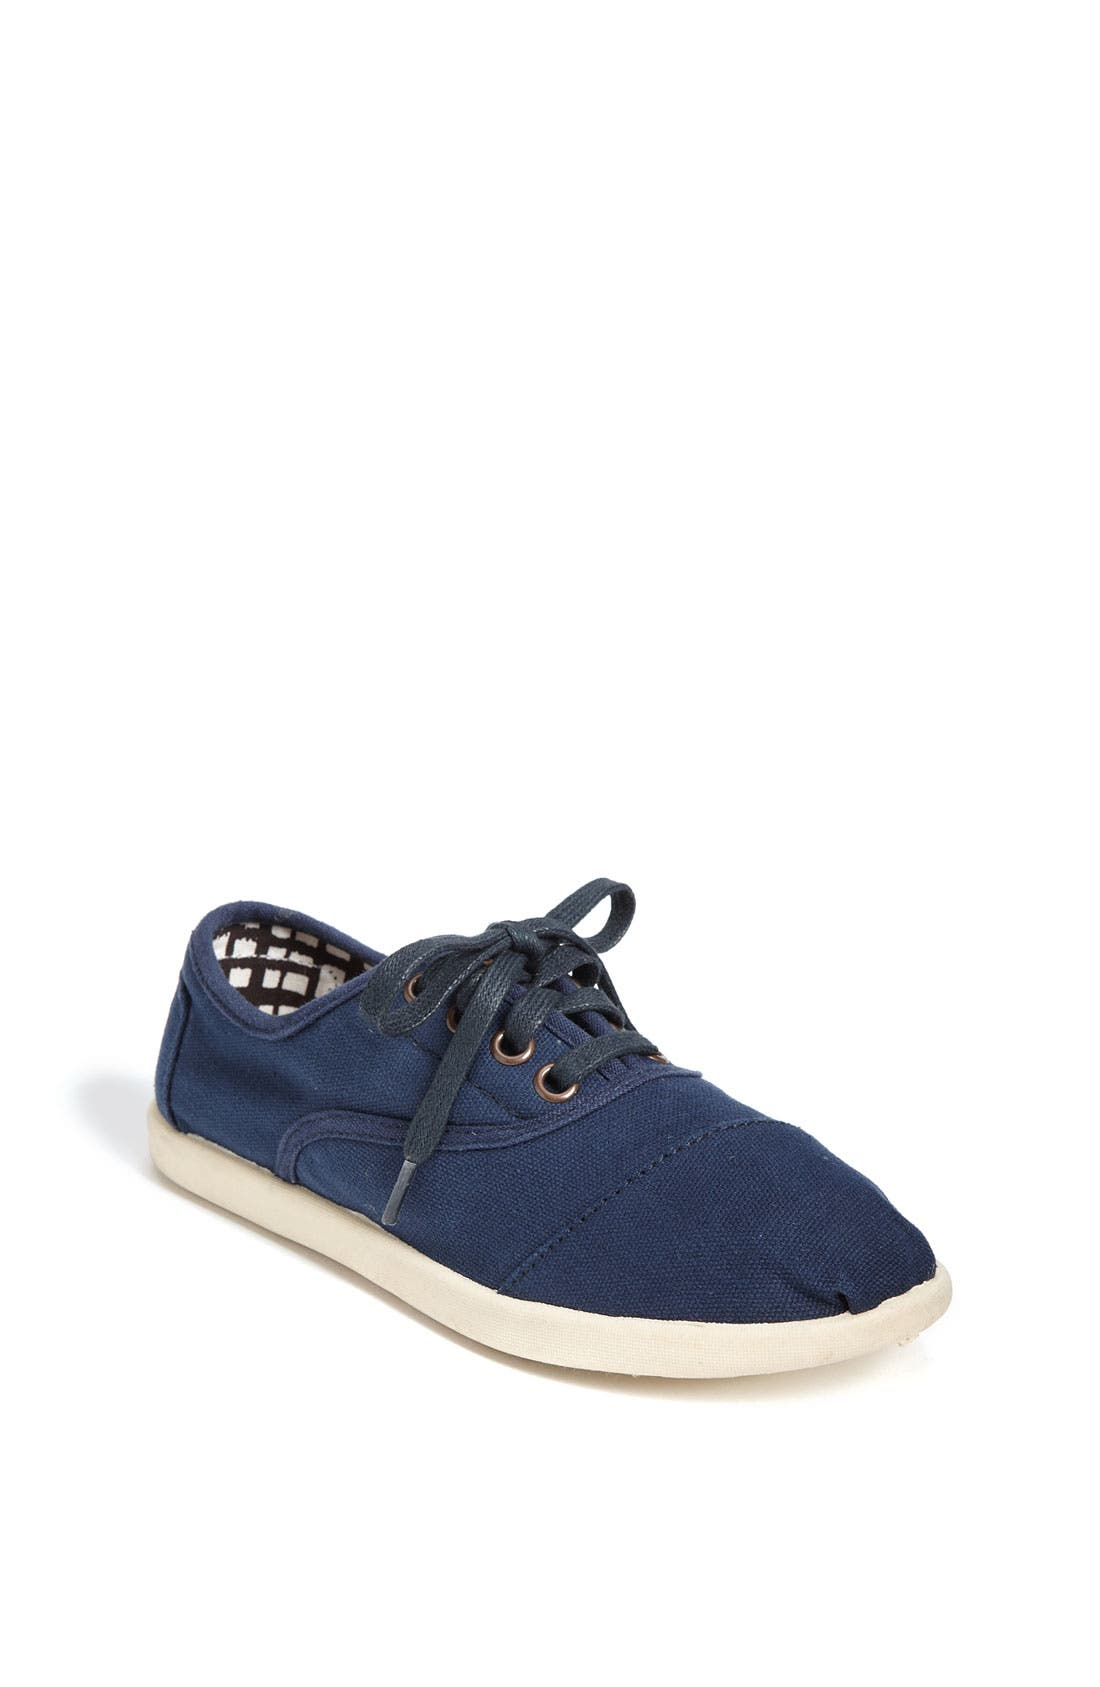 Main Image - TOMS 'Cordones - Youth' Canvas Slip-On (Toddler, Little Kid & Big Kid)